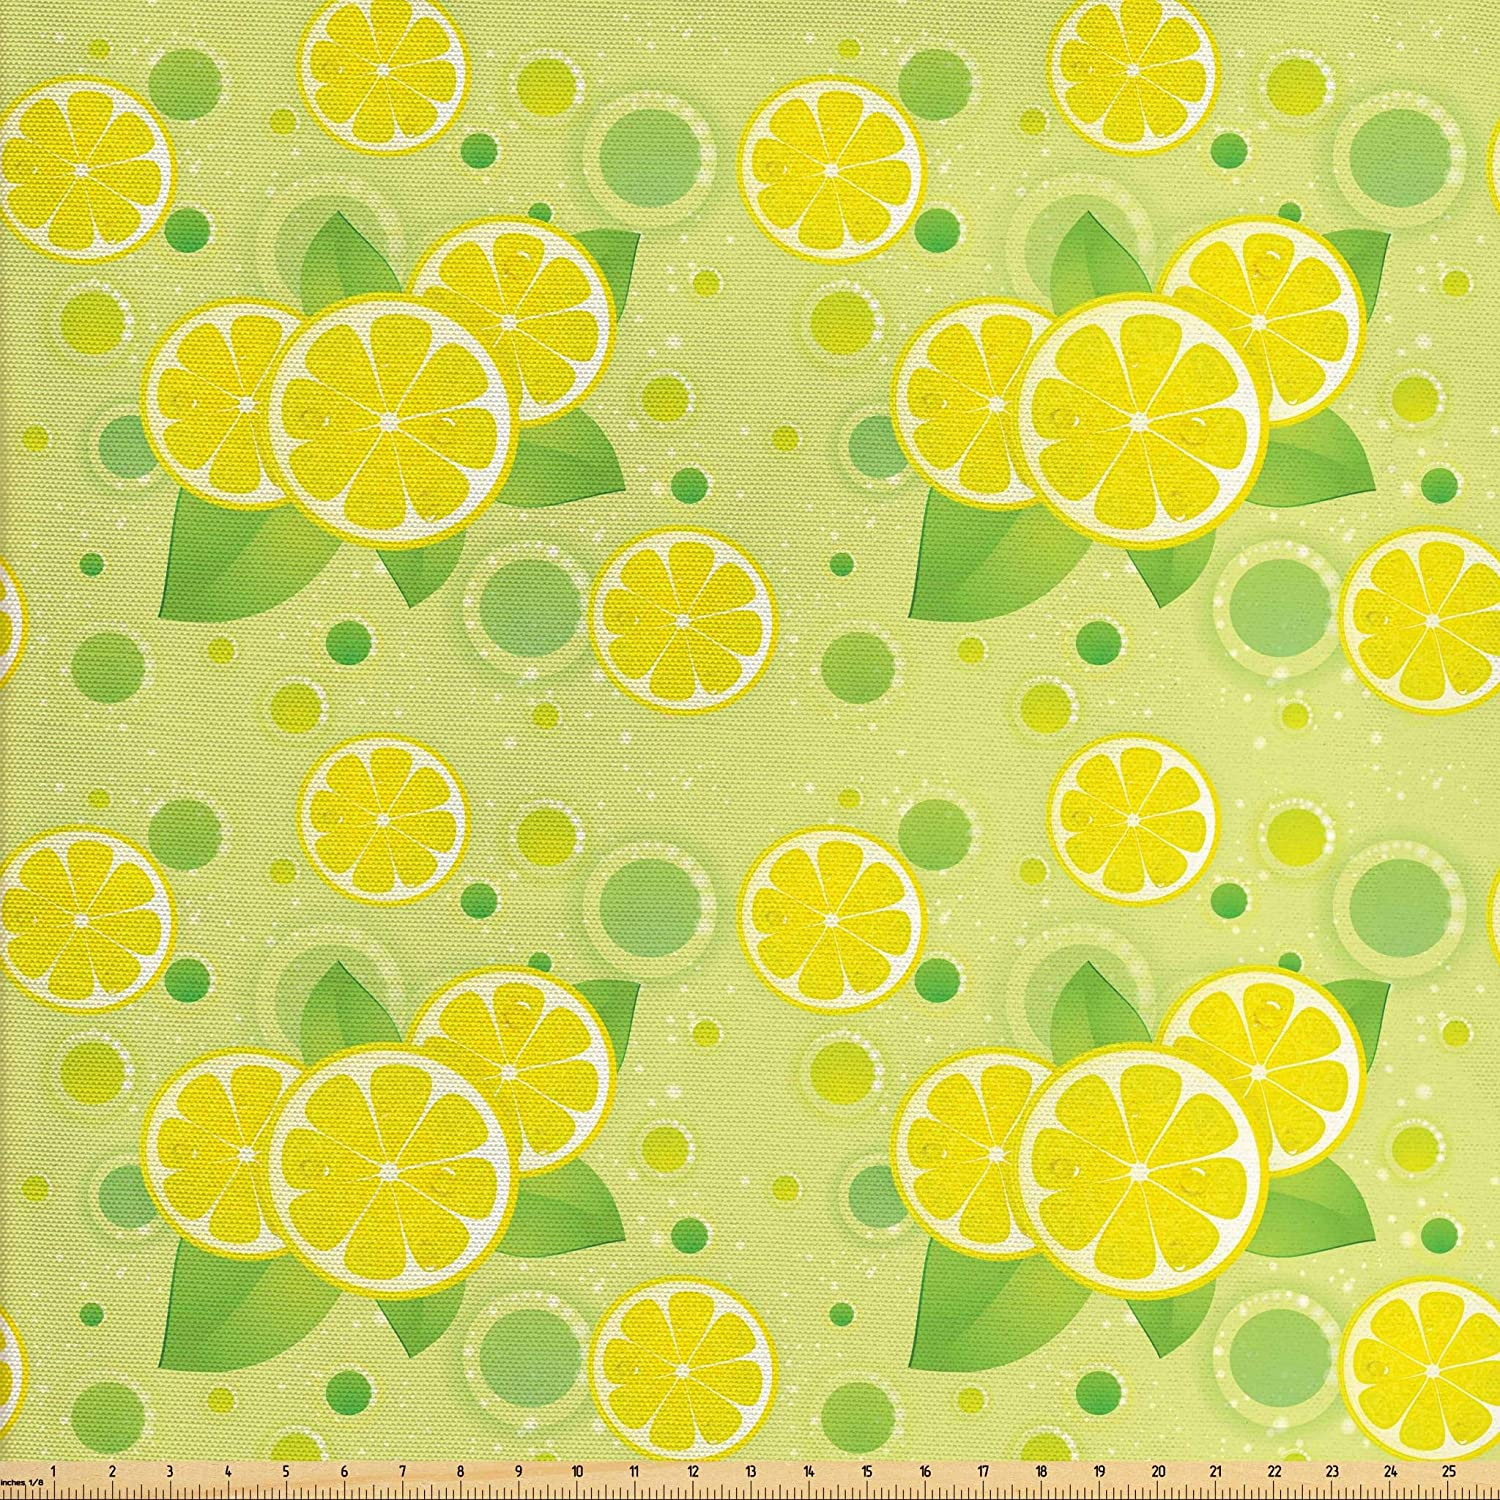 Lunarable Vintage Fabric by The Yard, Lemon Lime Pattern in Retro Vintage Style Citrus Fruit Circles Natural Image, Decorative Fabric for Upholstery and Home Accents, 10 Yards, Yellow Green